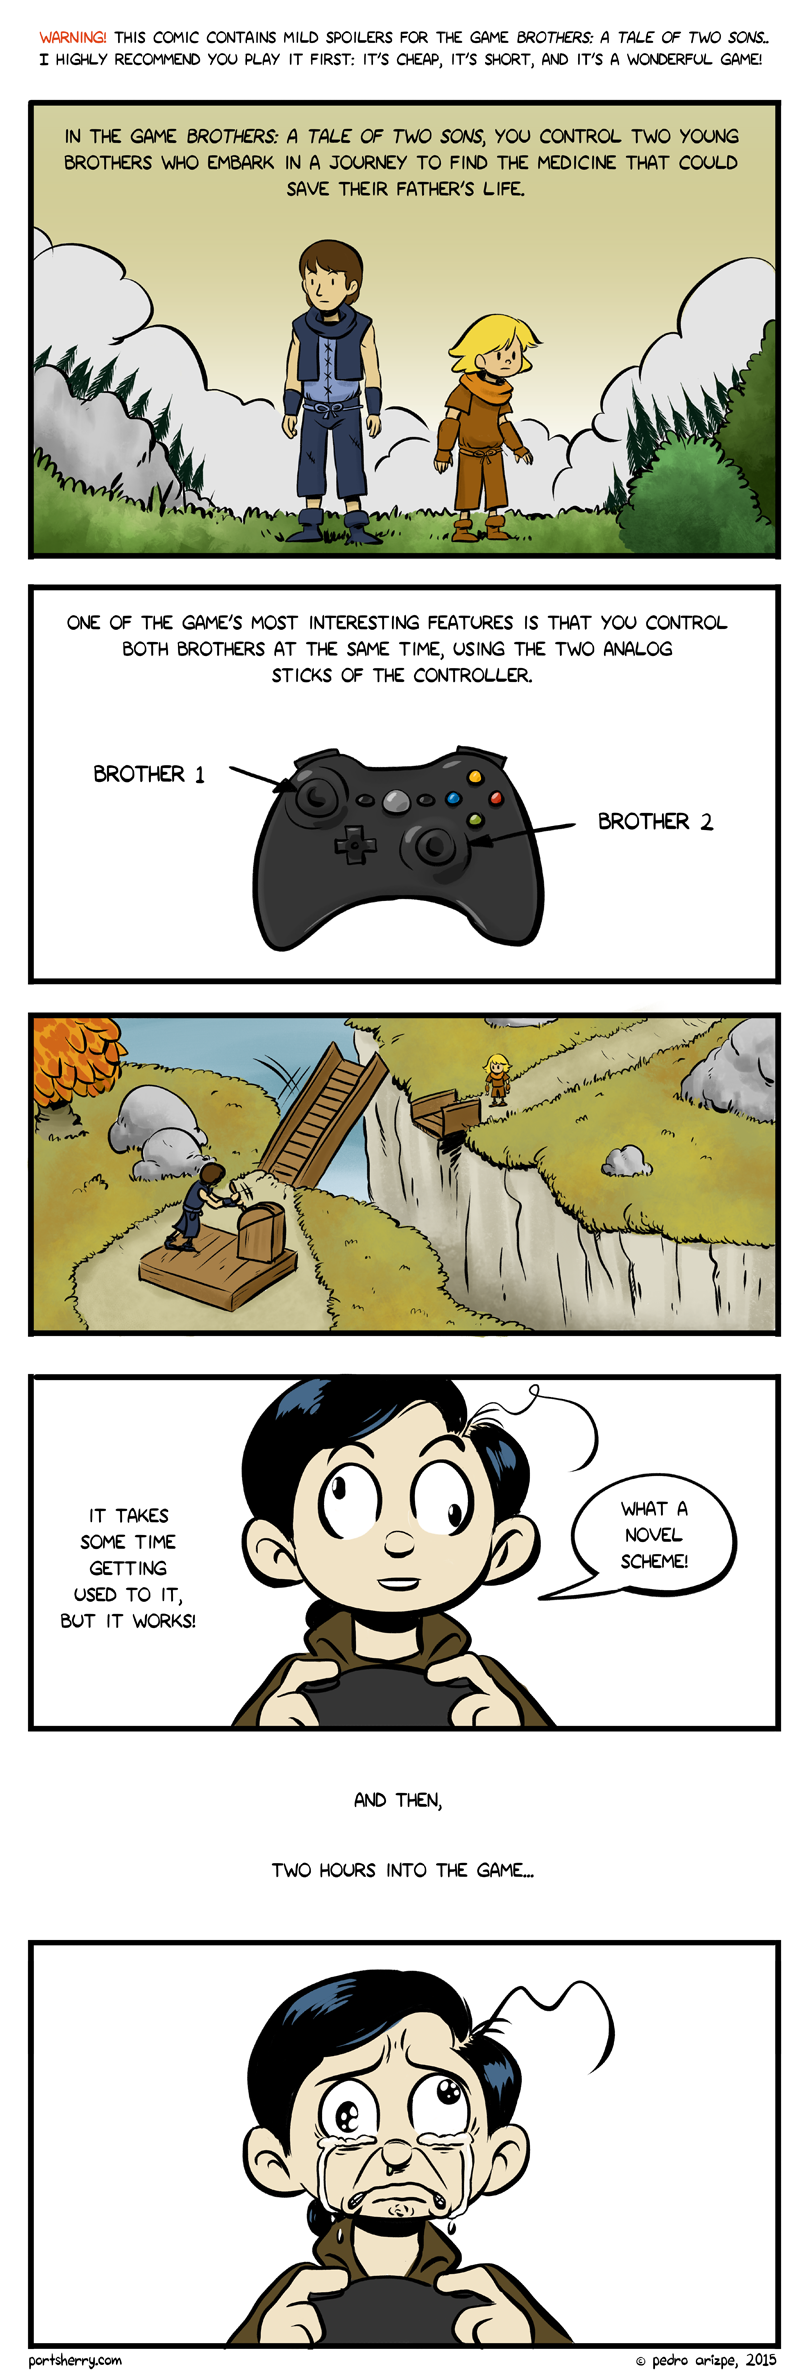 My experience with Brothers: A Tale of Two Sons